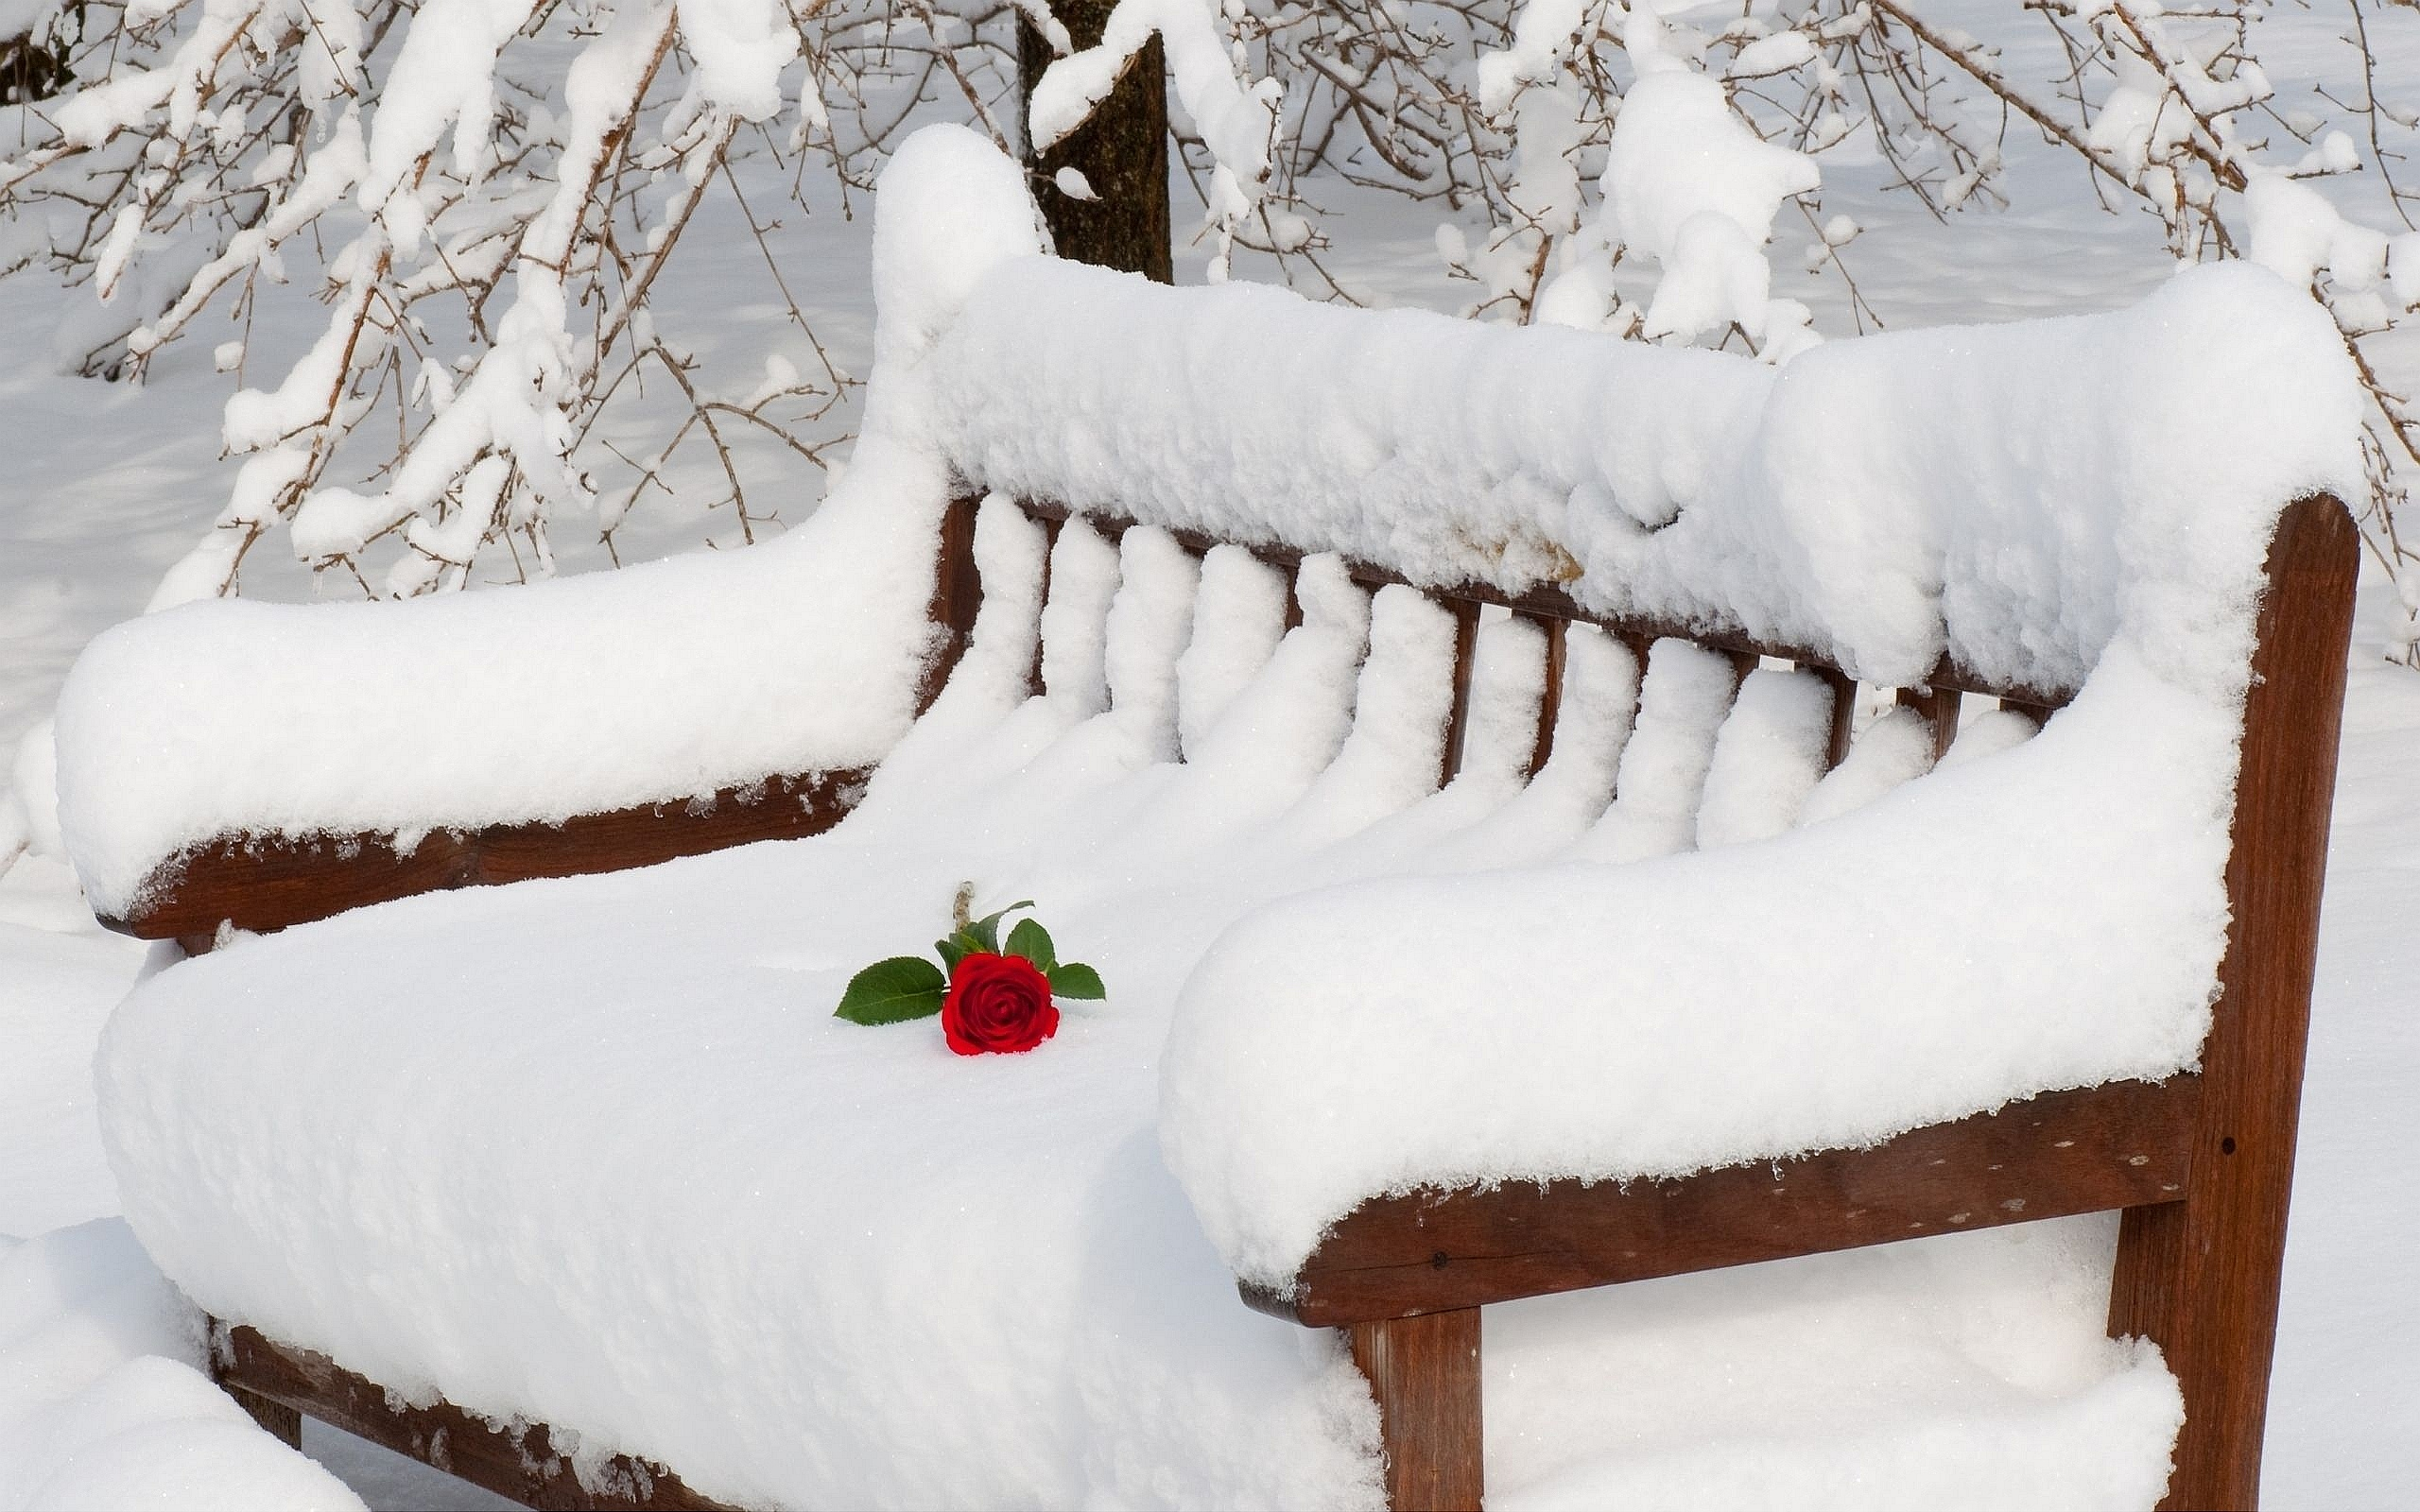 Romantic s wallpaper 1024x768 54393 - Rose in snow wallpaper ...